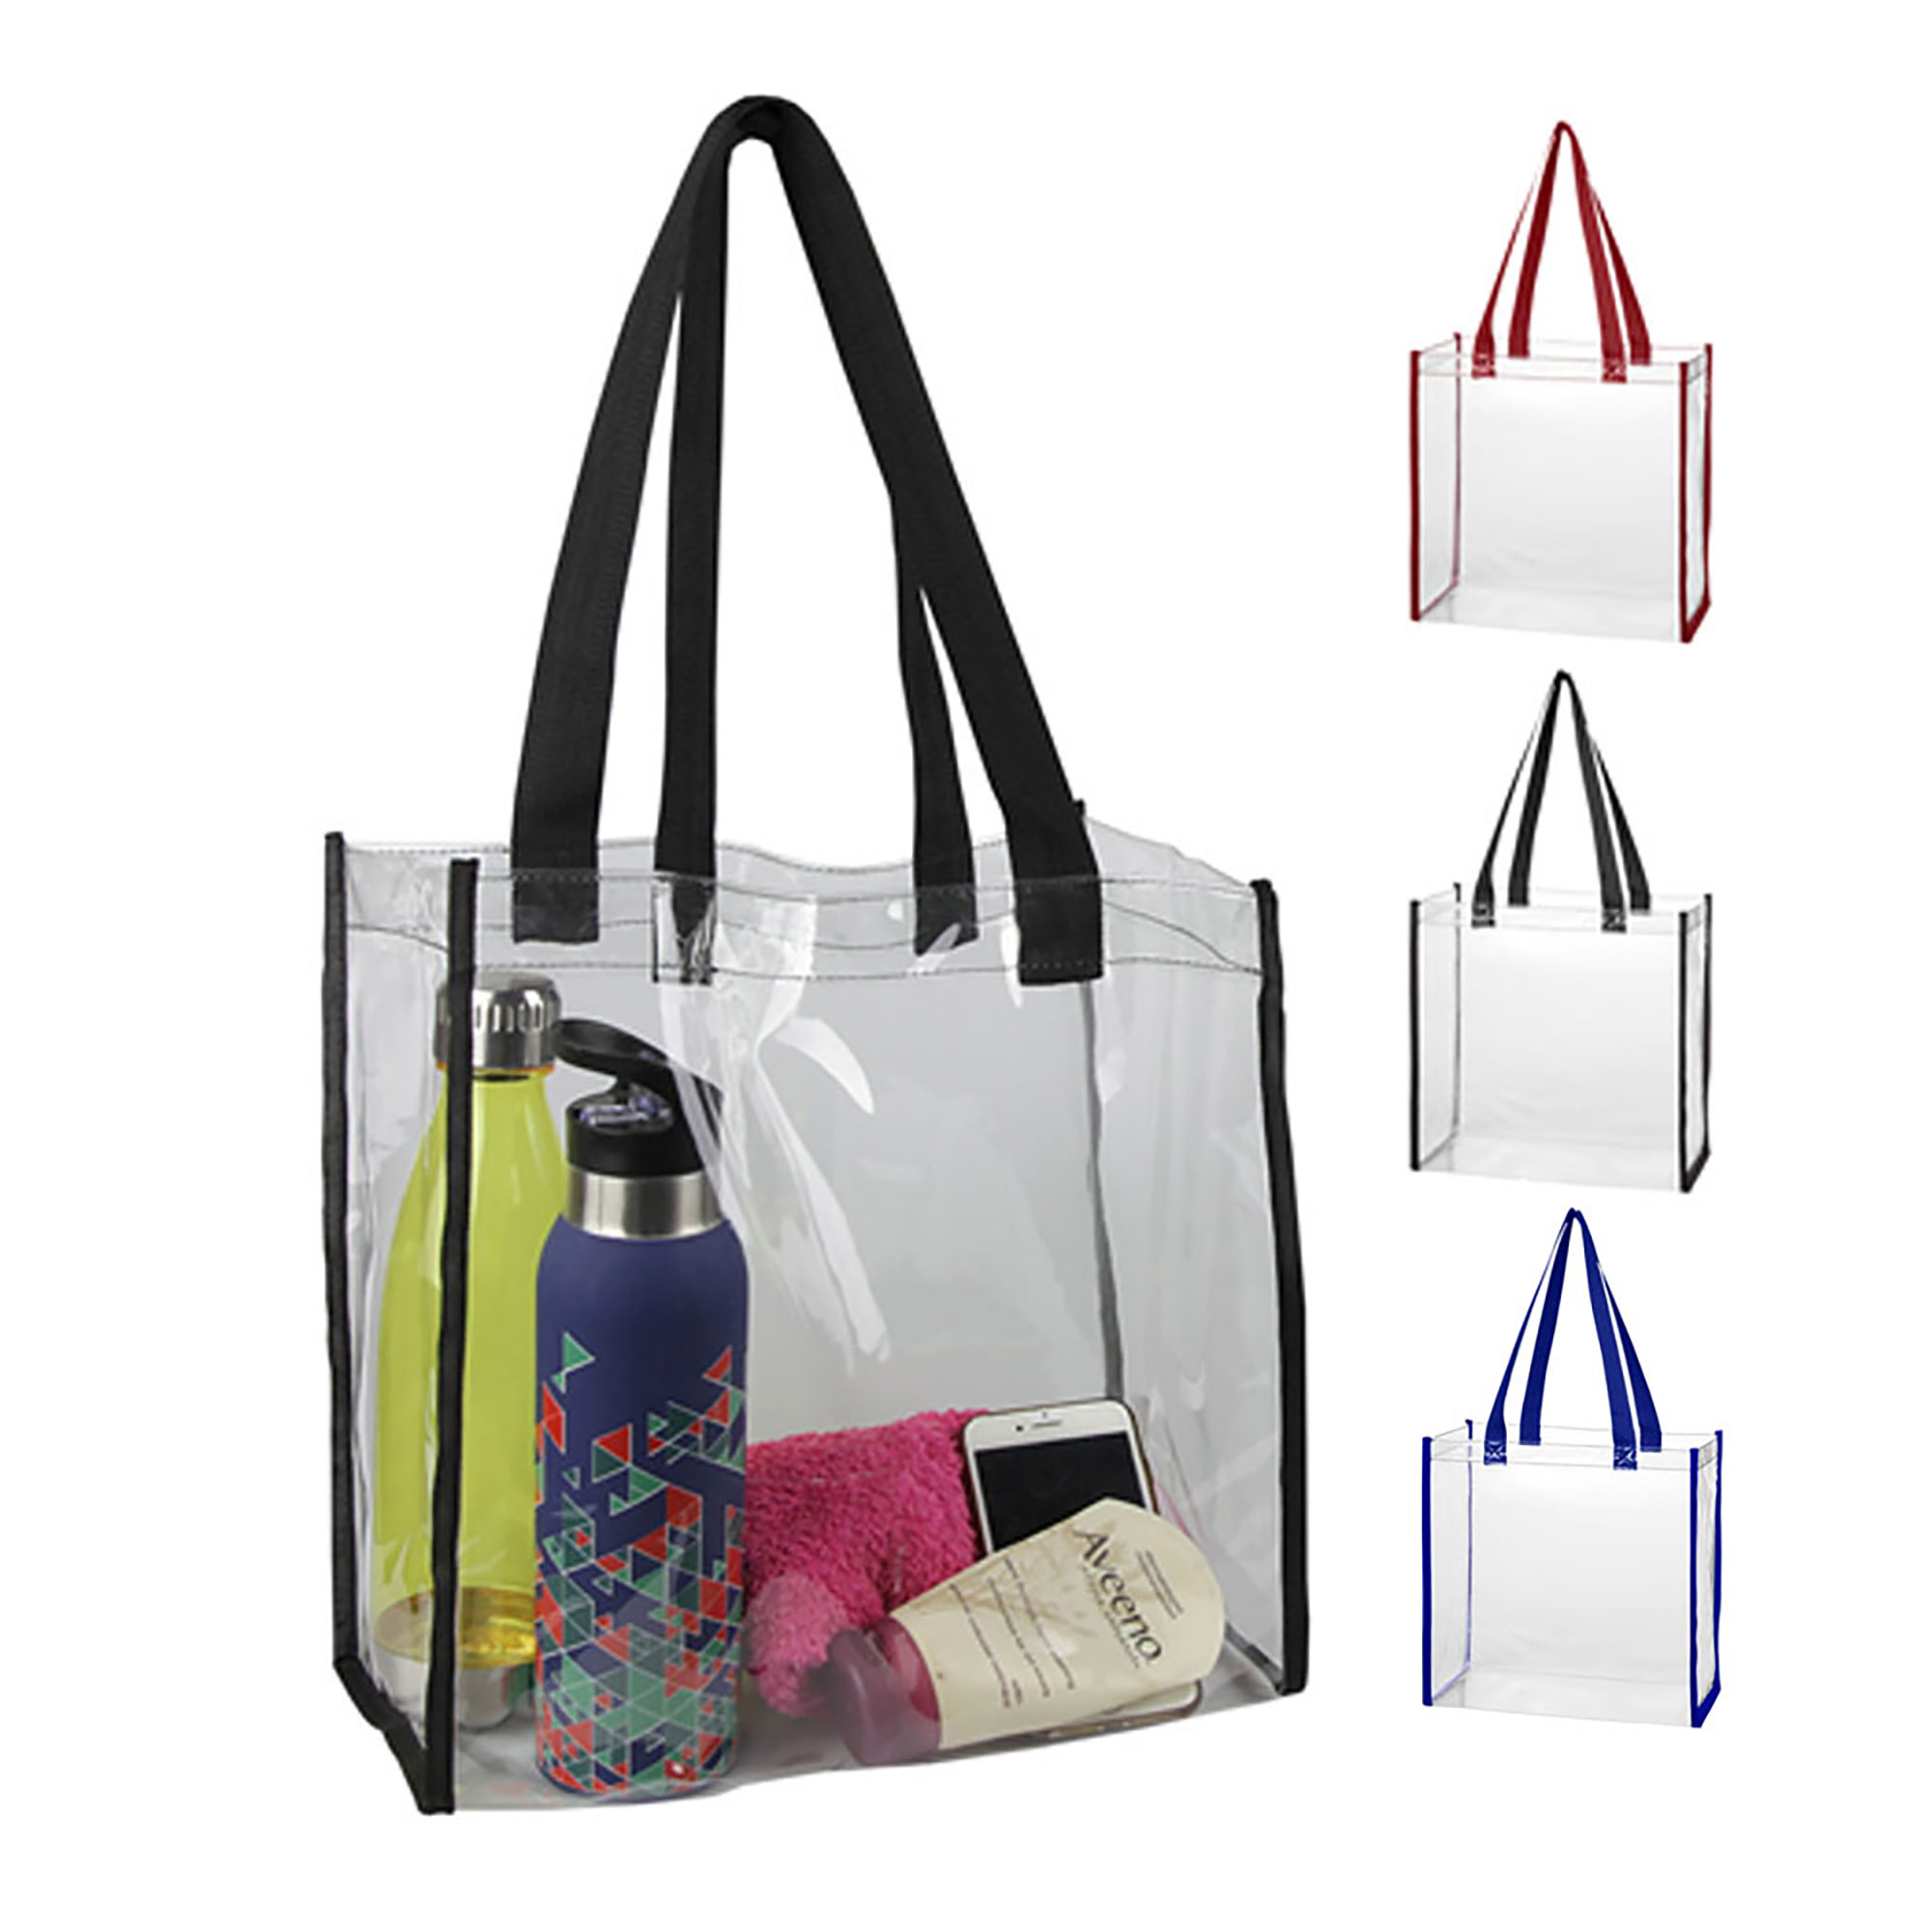 CLEAR TOTE BAG - 1 Colour Print, From $2.33